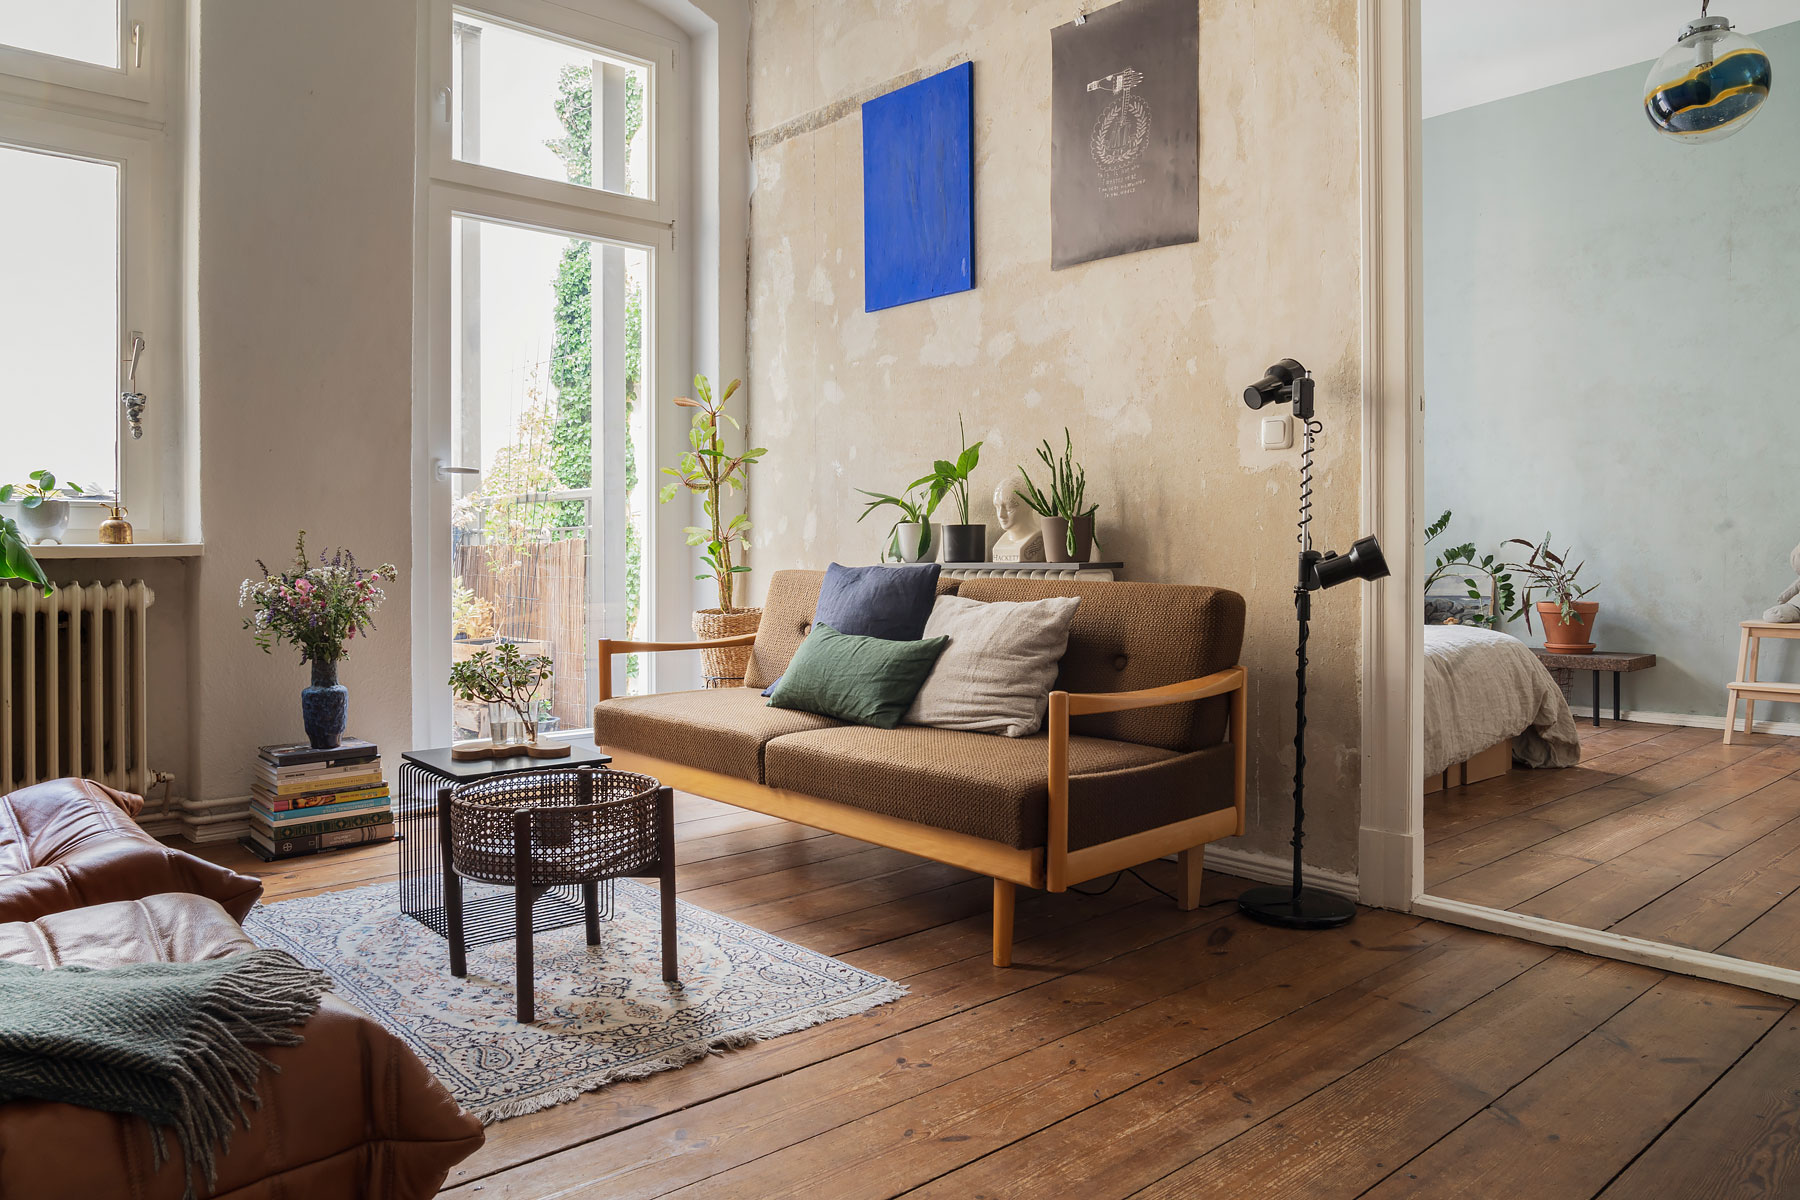 Apartment of Berlin based interior designer Line Casselman